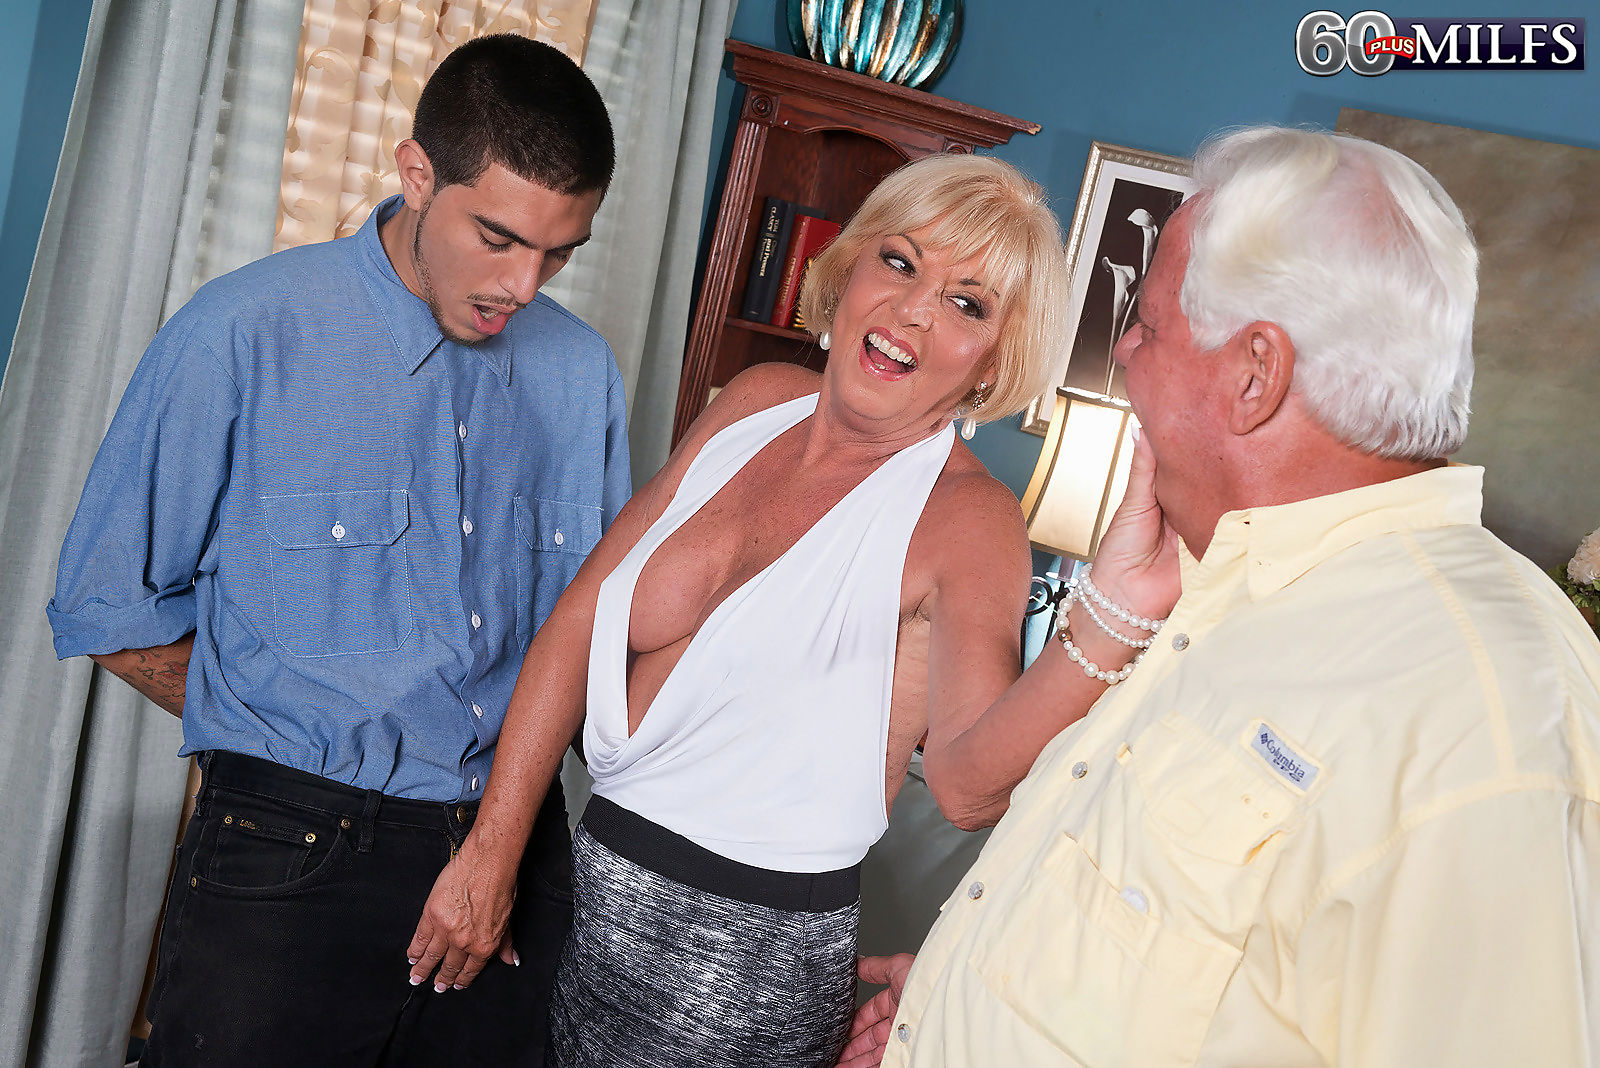 Granny wife cheating in cuckold sex action - part 3315